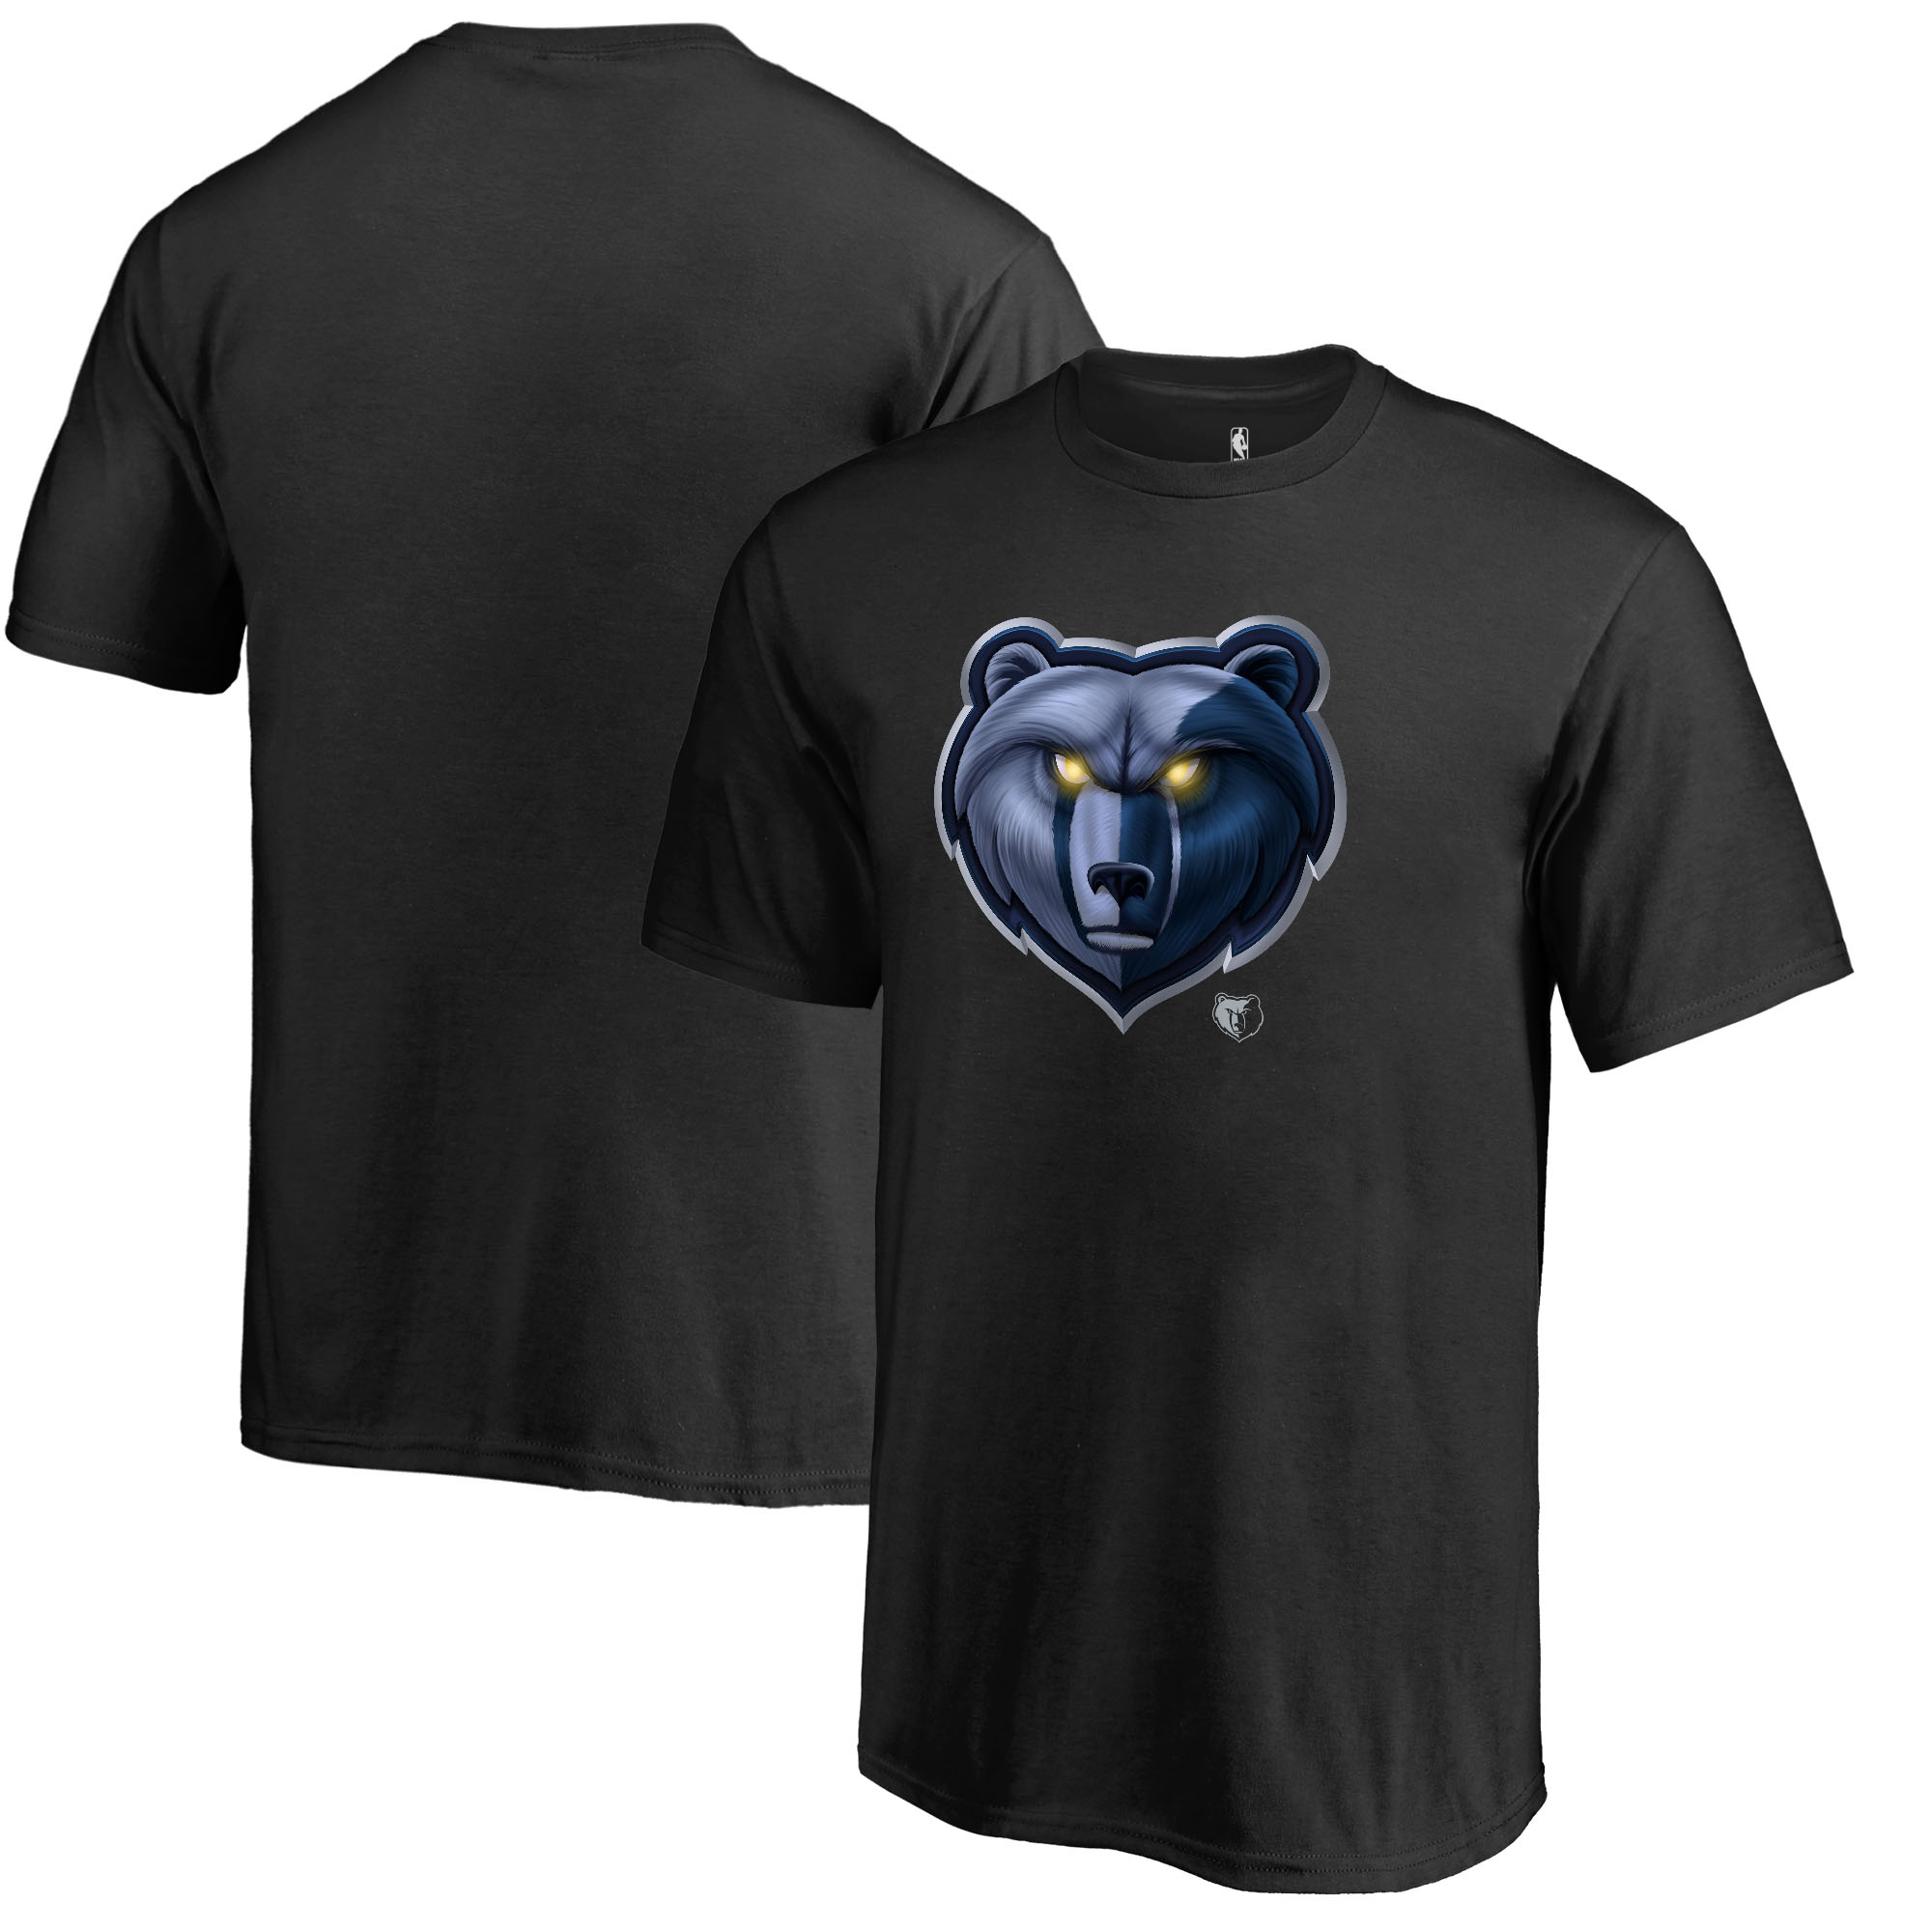 Memphis Grizzlies Fanatics Branded Youth Midnight Mascot T-Shirt - Black